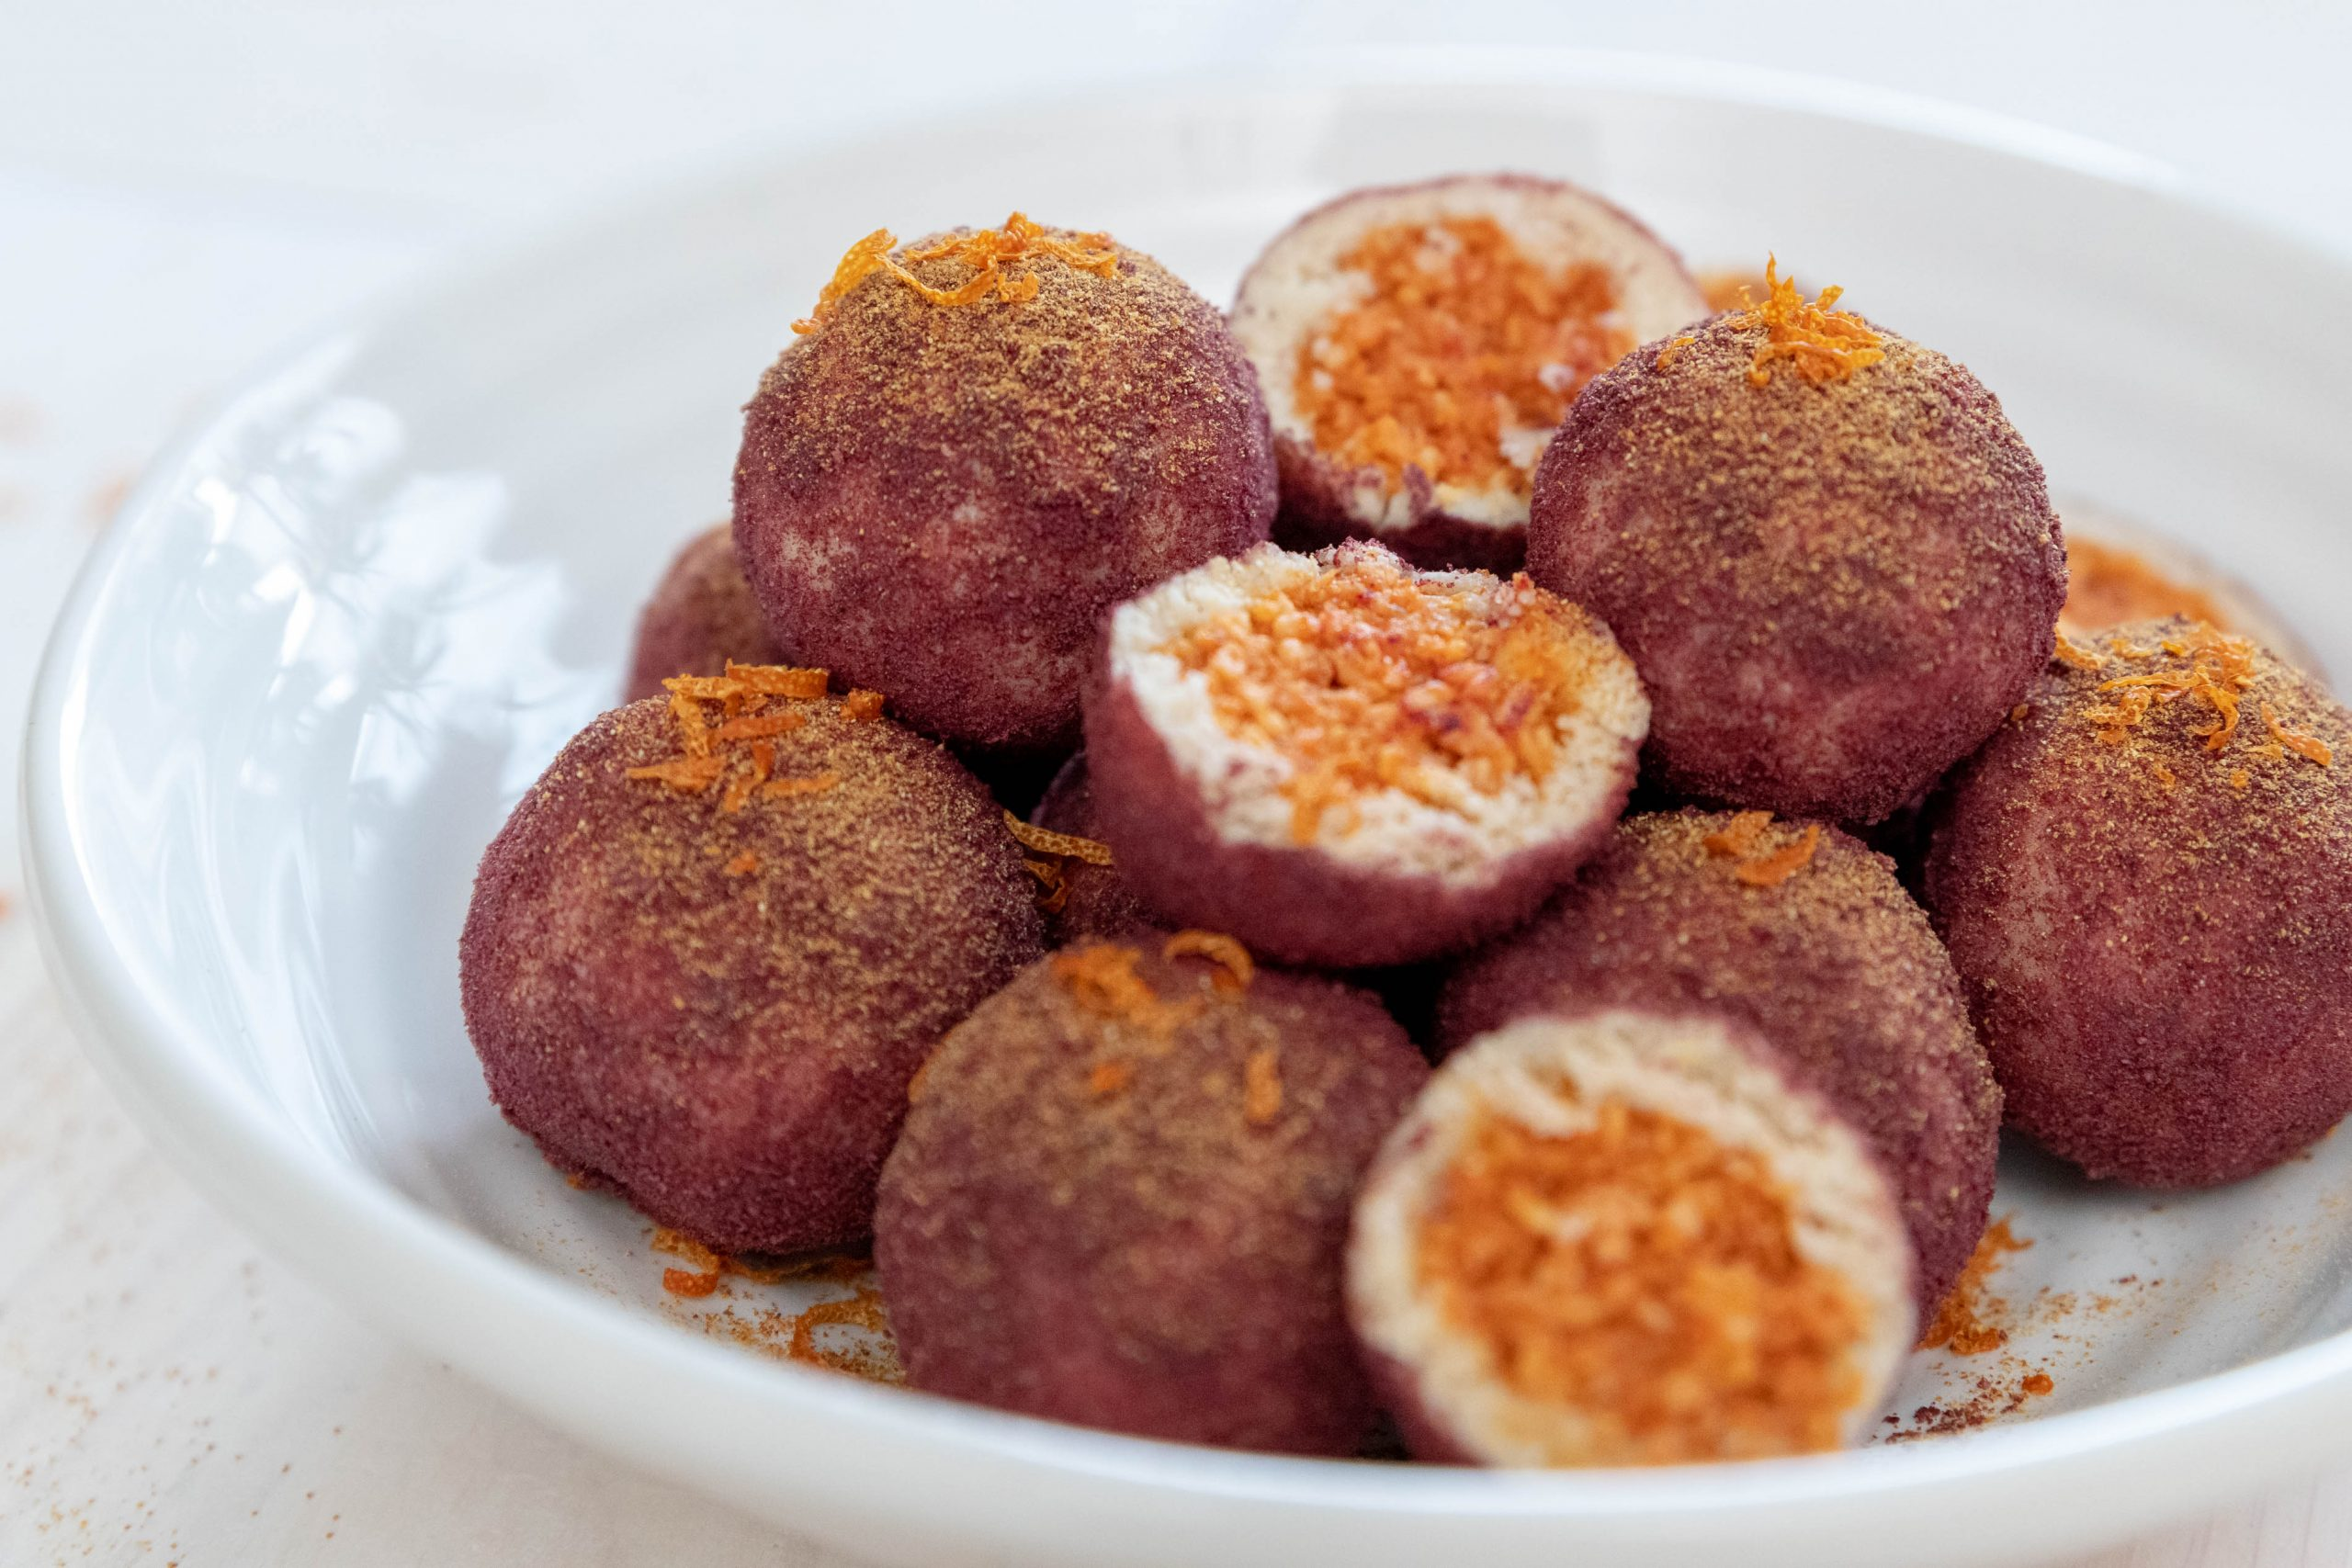 Delicious energy balls flavored with Goji berries.